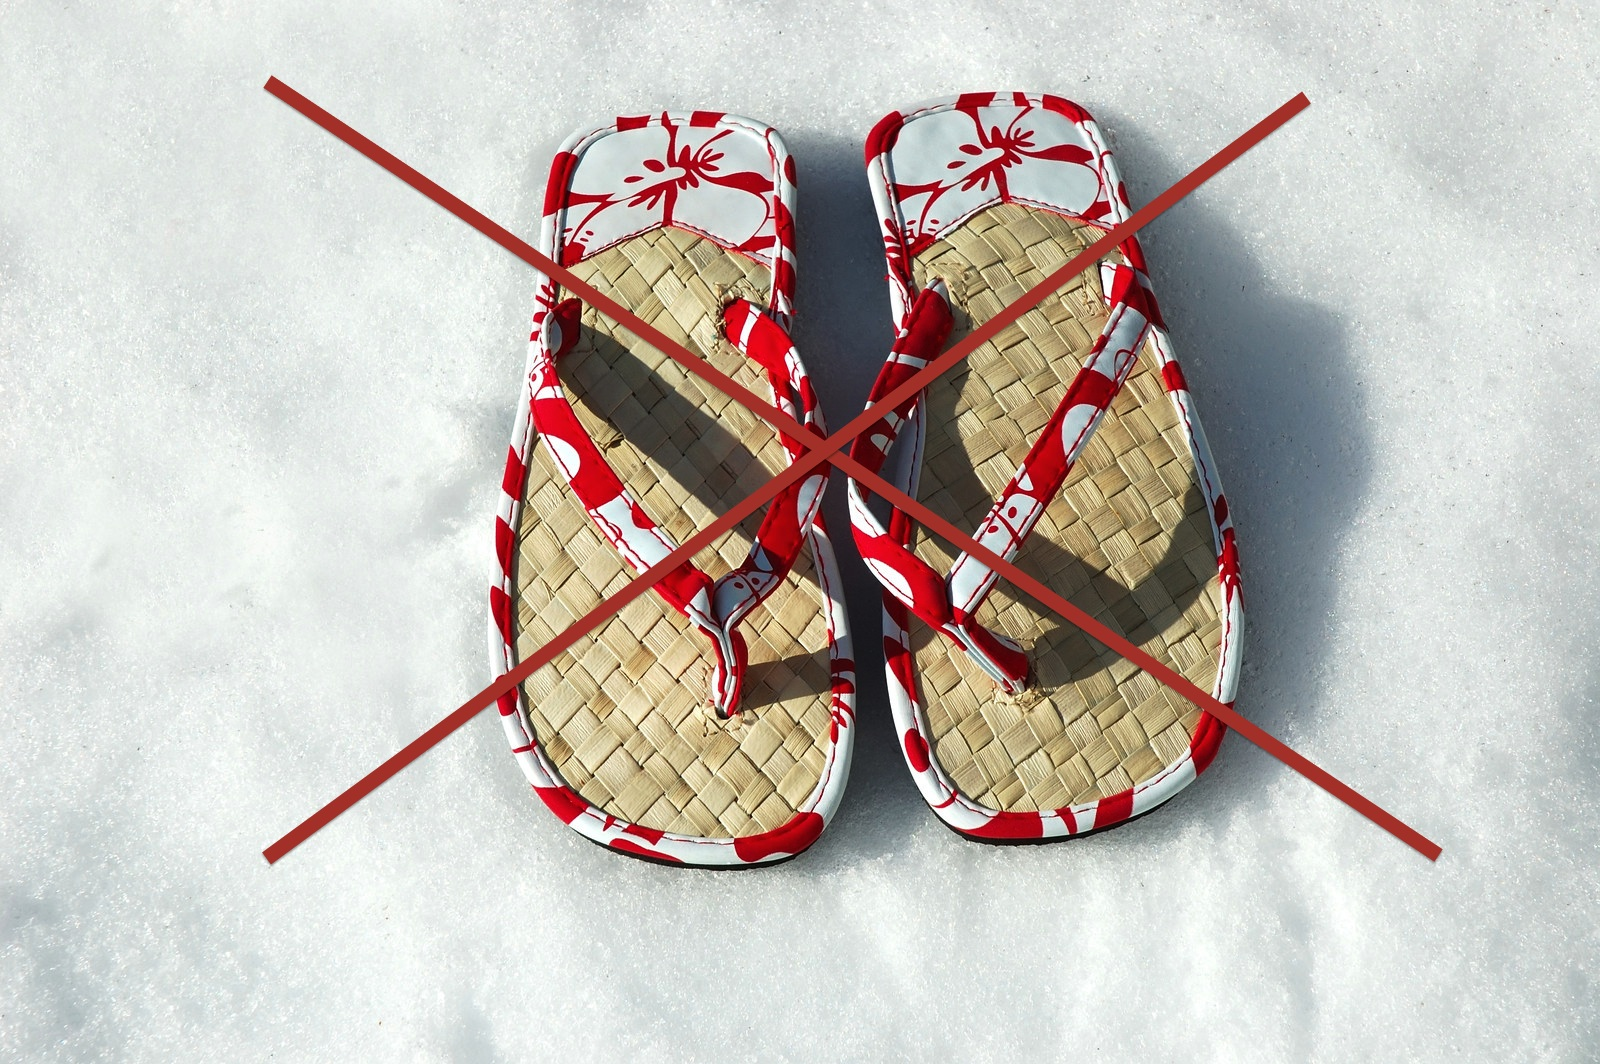 no more flip flops in snow